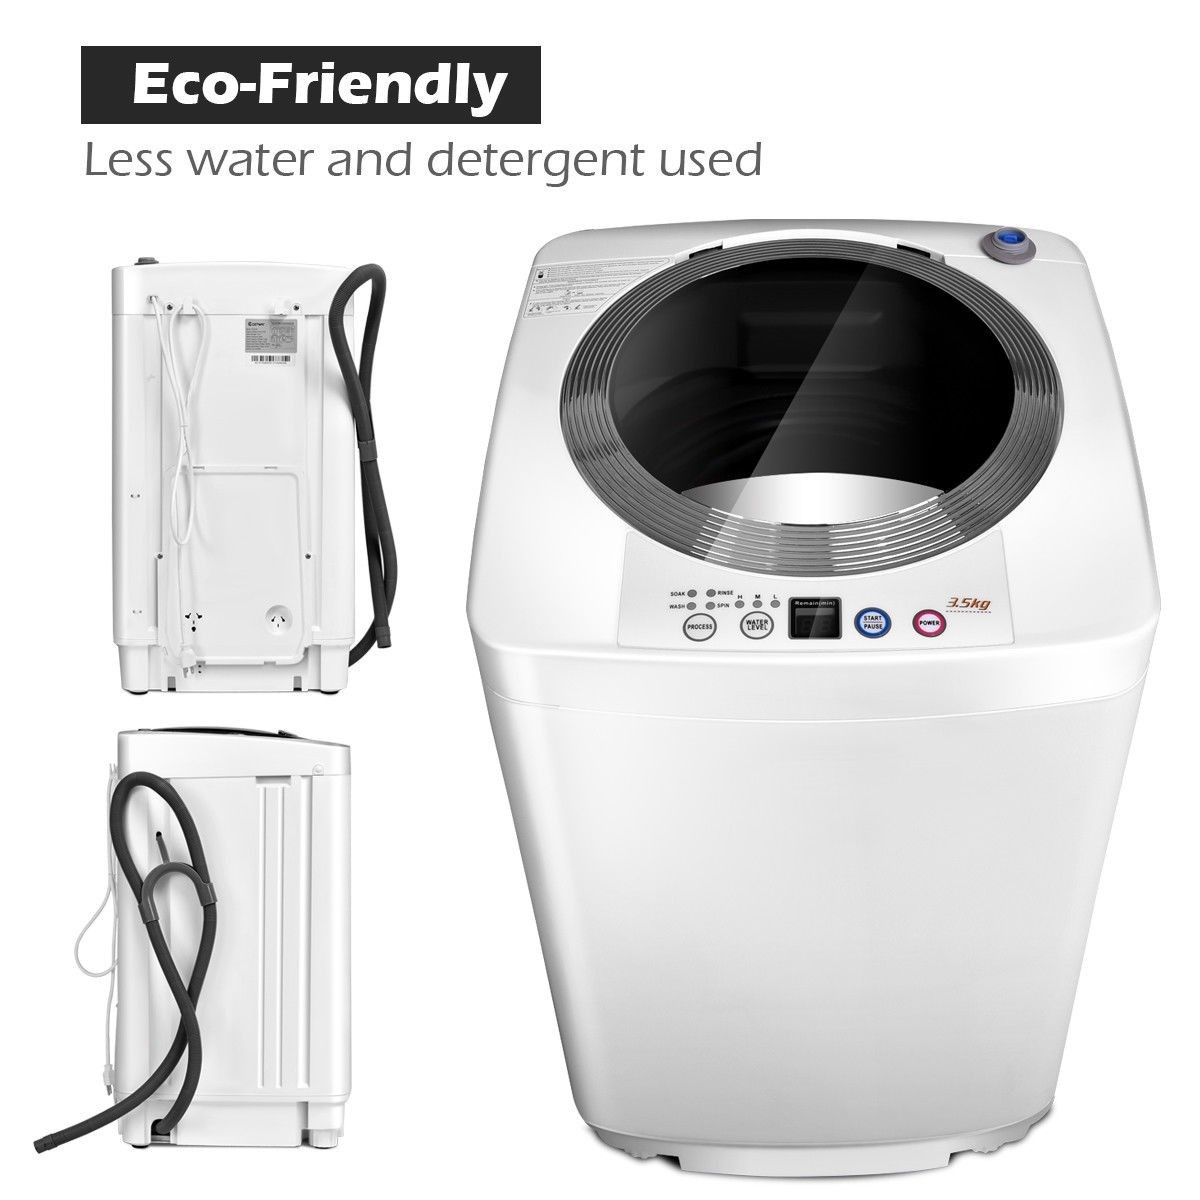 7 7 Lbs Automatic Laundry Washing Machine High Quality And Brand